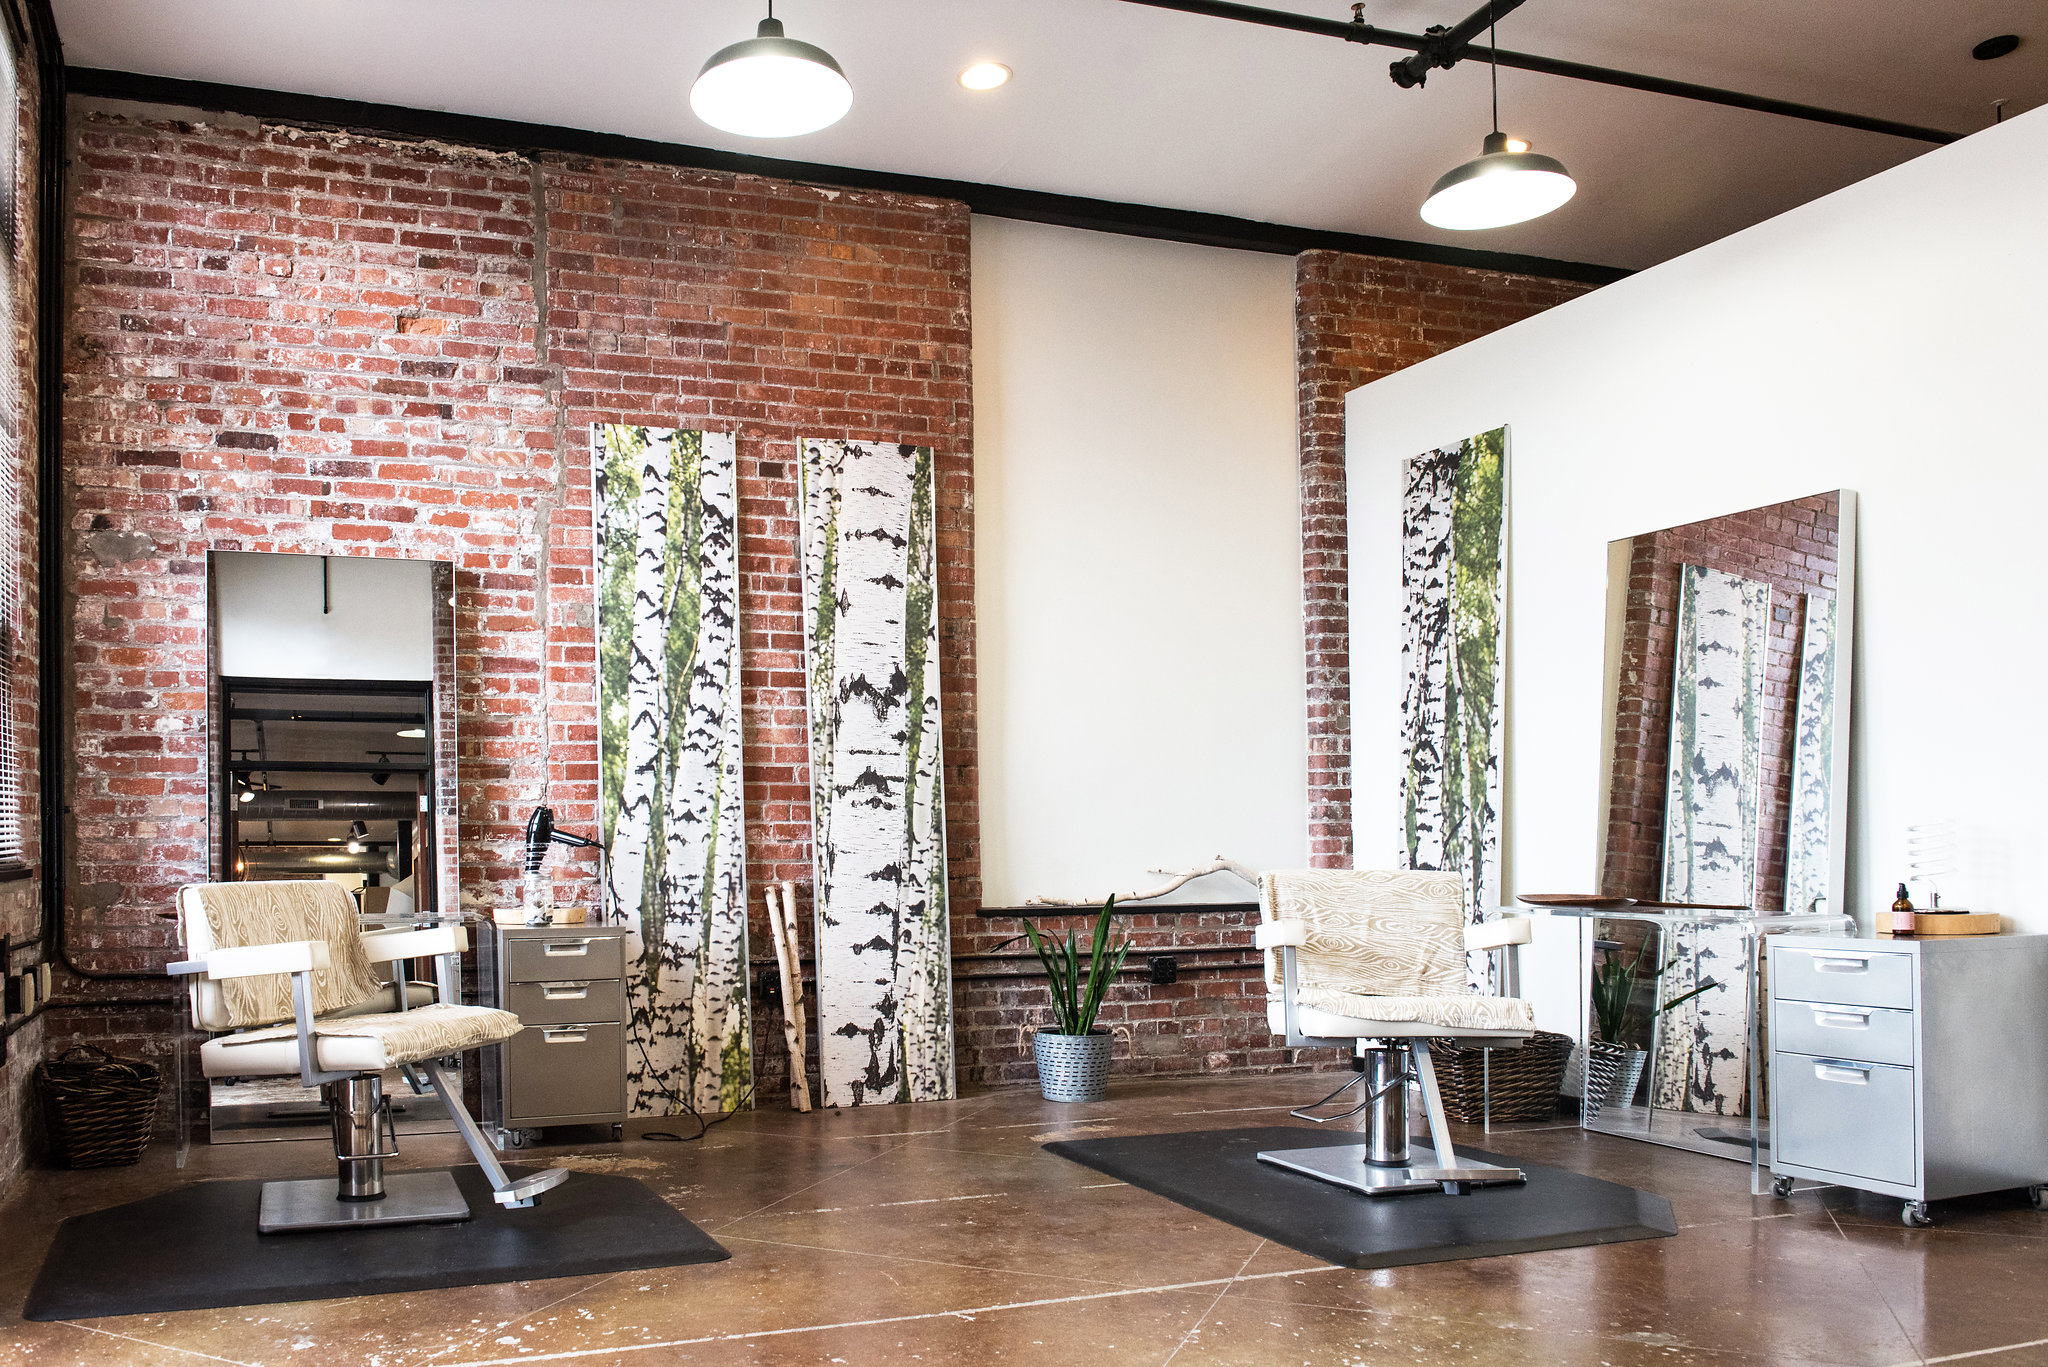 hair-habitat-salon-spa-syracuse-0239.jpg